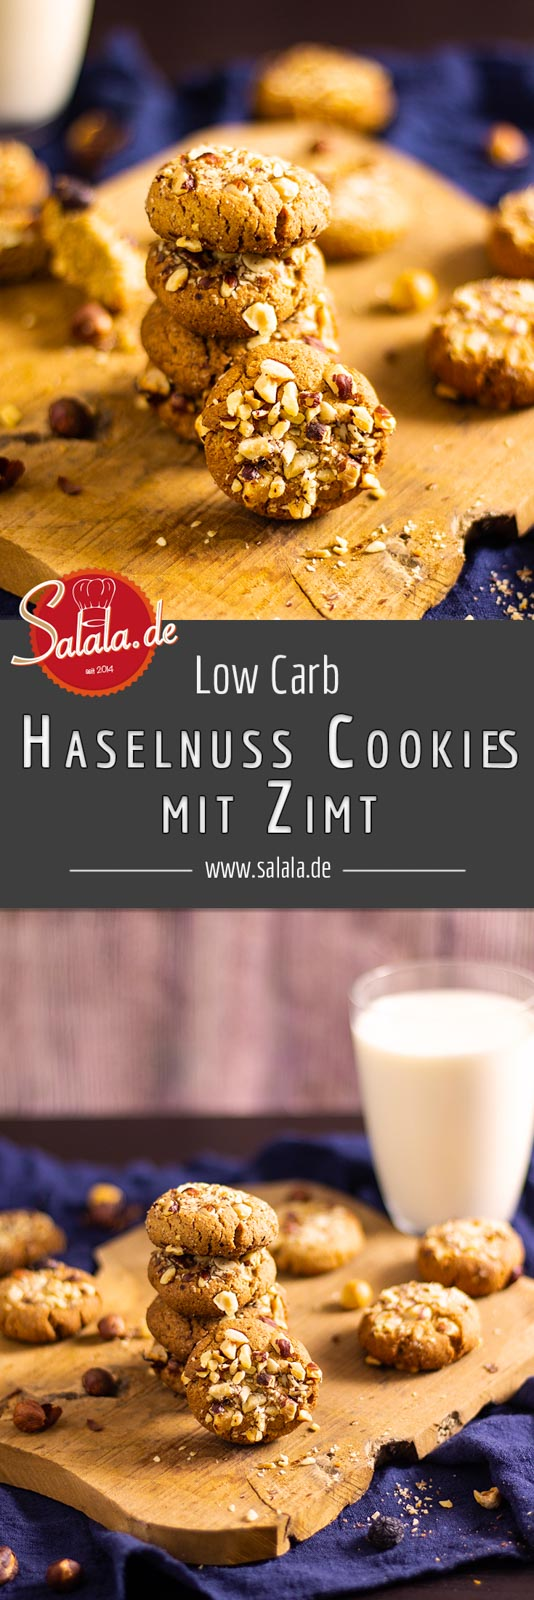 Haselnusscookies mit Zimt - by salala.de - Low Carb Rezept ohne Mehl und ohne Zucker Low Carb #Cookies #Haselnusscookies #Zimtcookies #glutenfrei #LowCarb #Rezepte #LowCarbRezepte